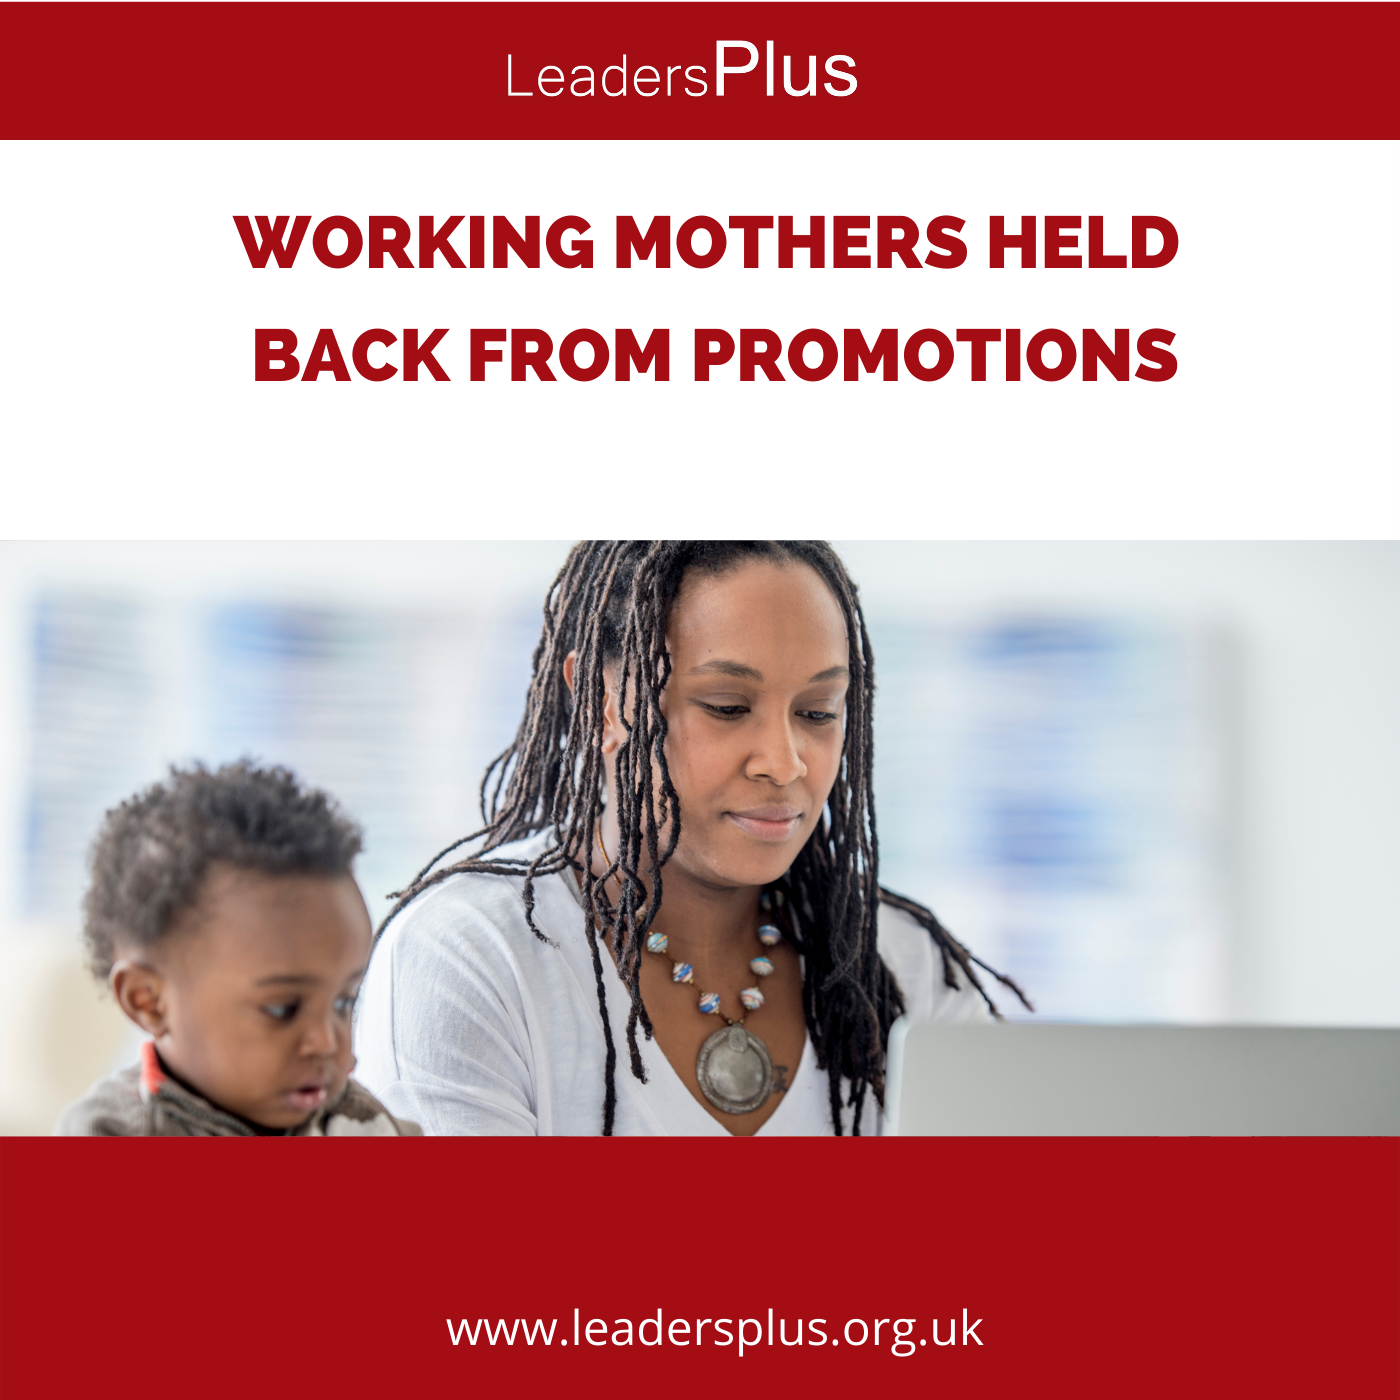 working mothers held back from promotion